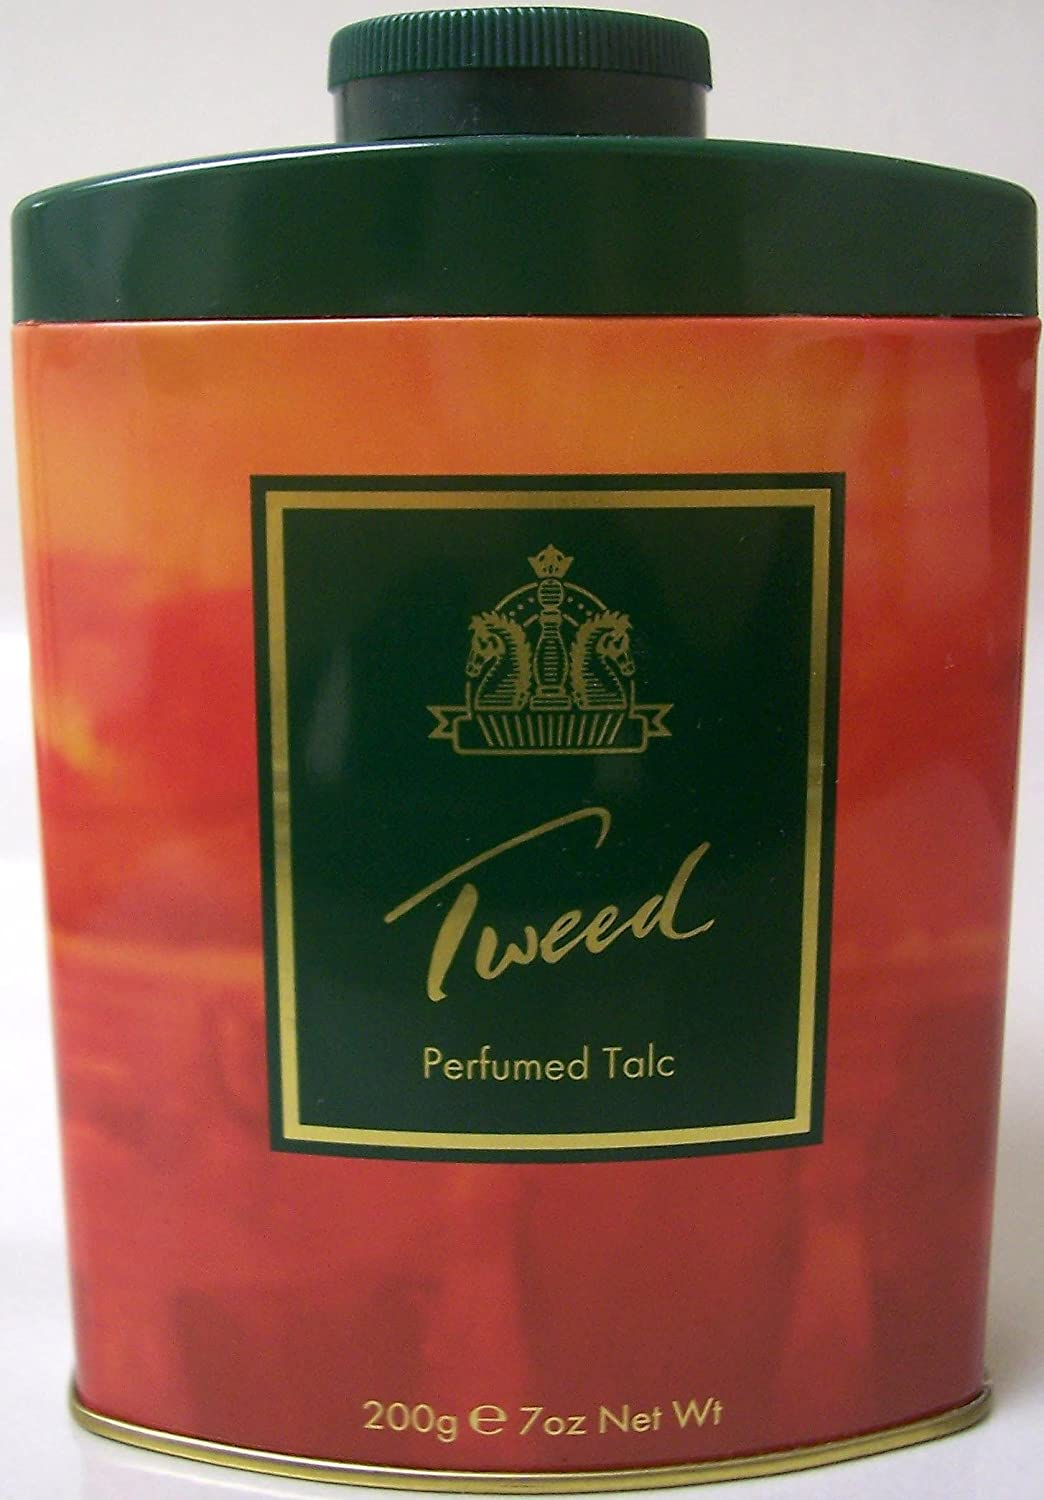 Tweed perfumado Talco, 200 g Fdd International Ltd. 2747525